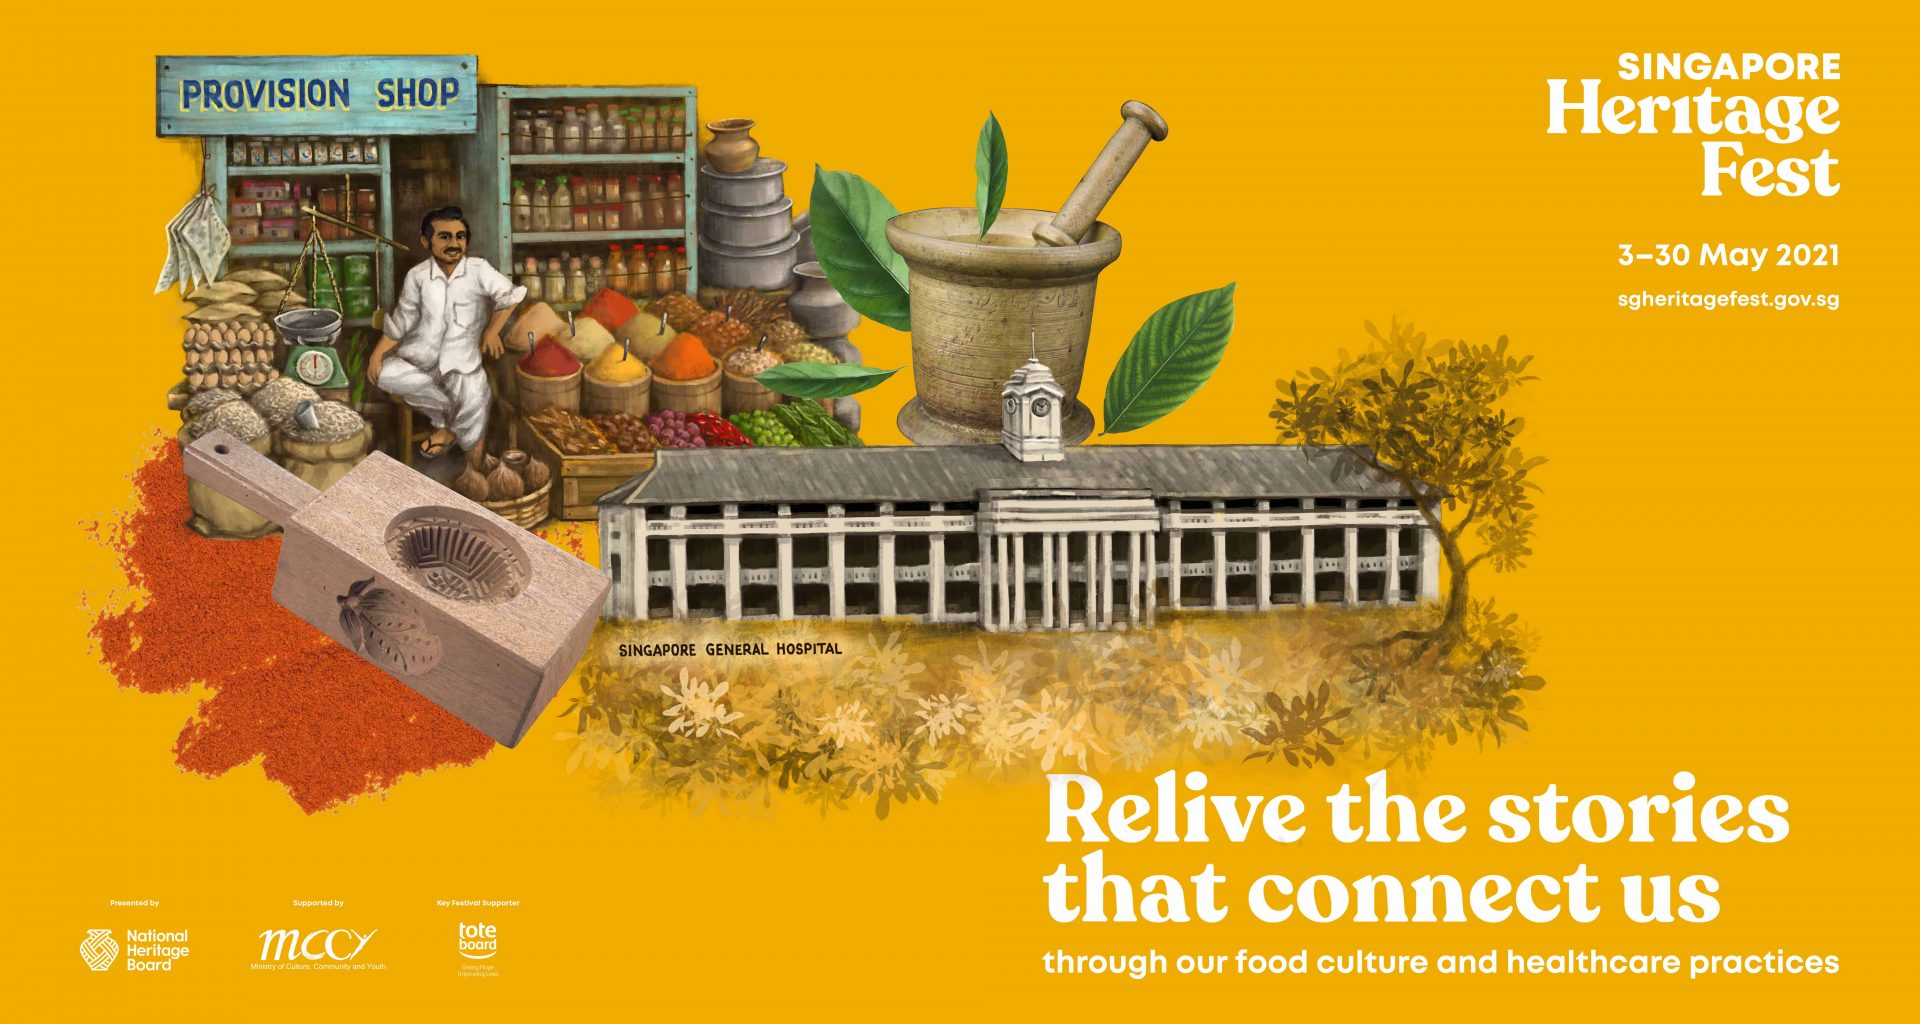 Singapore HeritageFest 2021 - The festival returns in a new hybrid format uncovering both healthcare history and food heritage - Alvinology